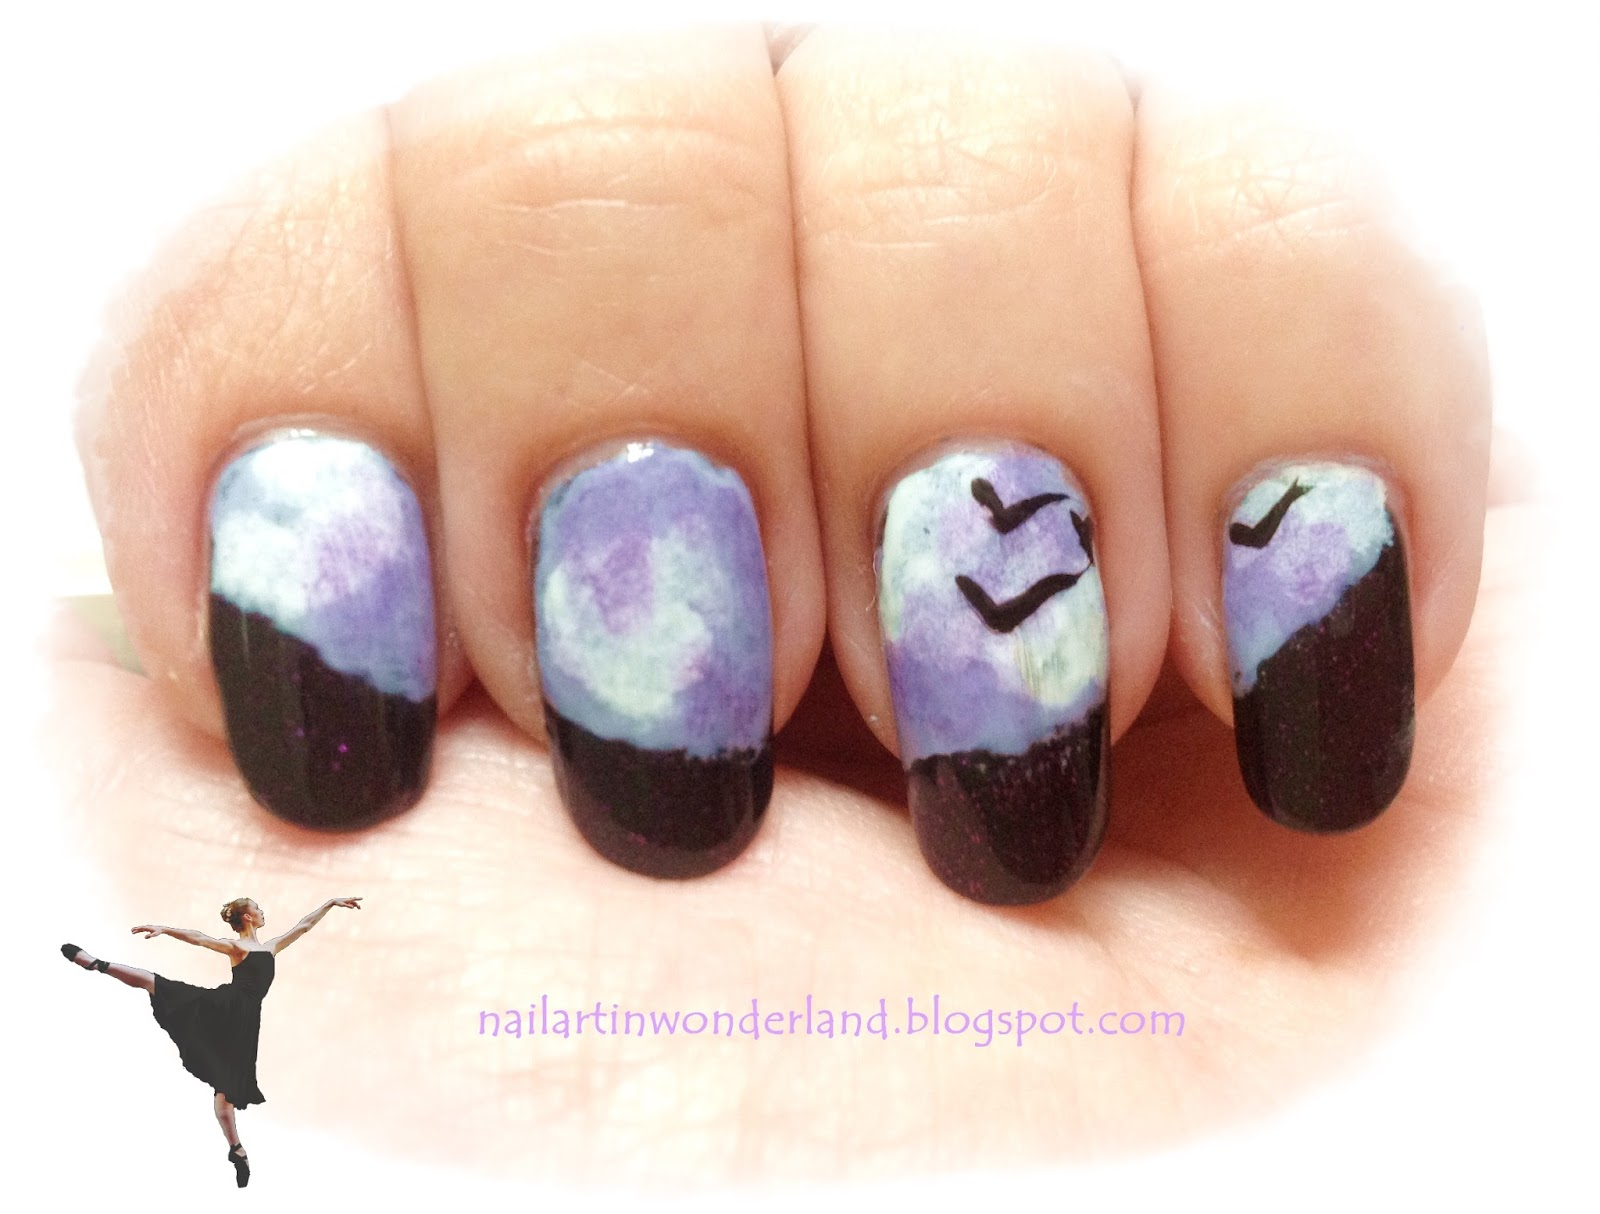 Nail art inspired by a song: Under a Violet Moon by Blackmore's Night